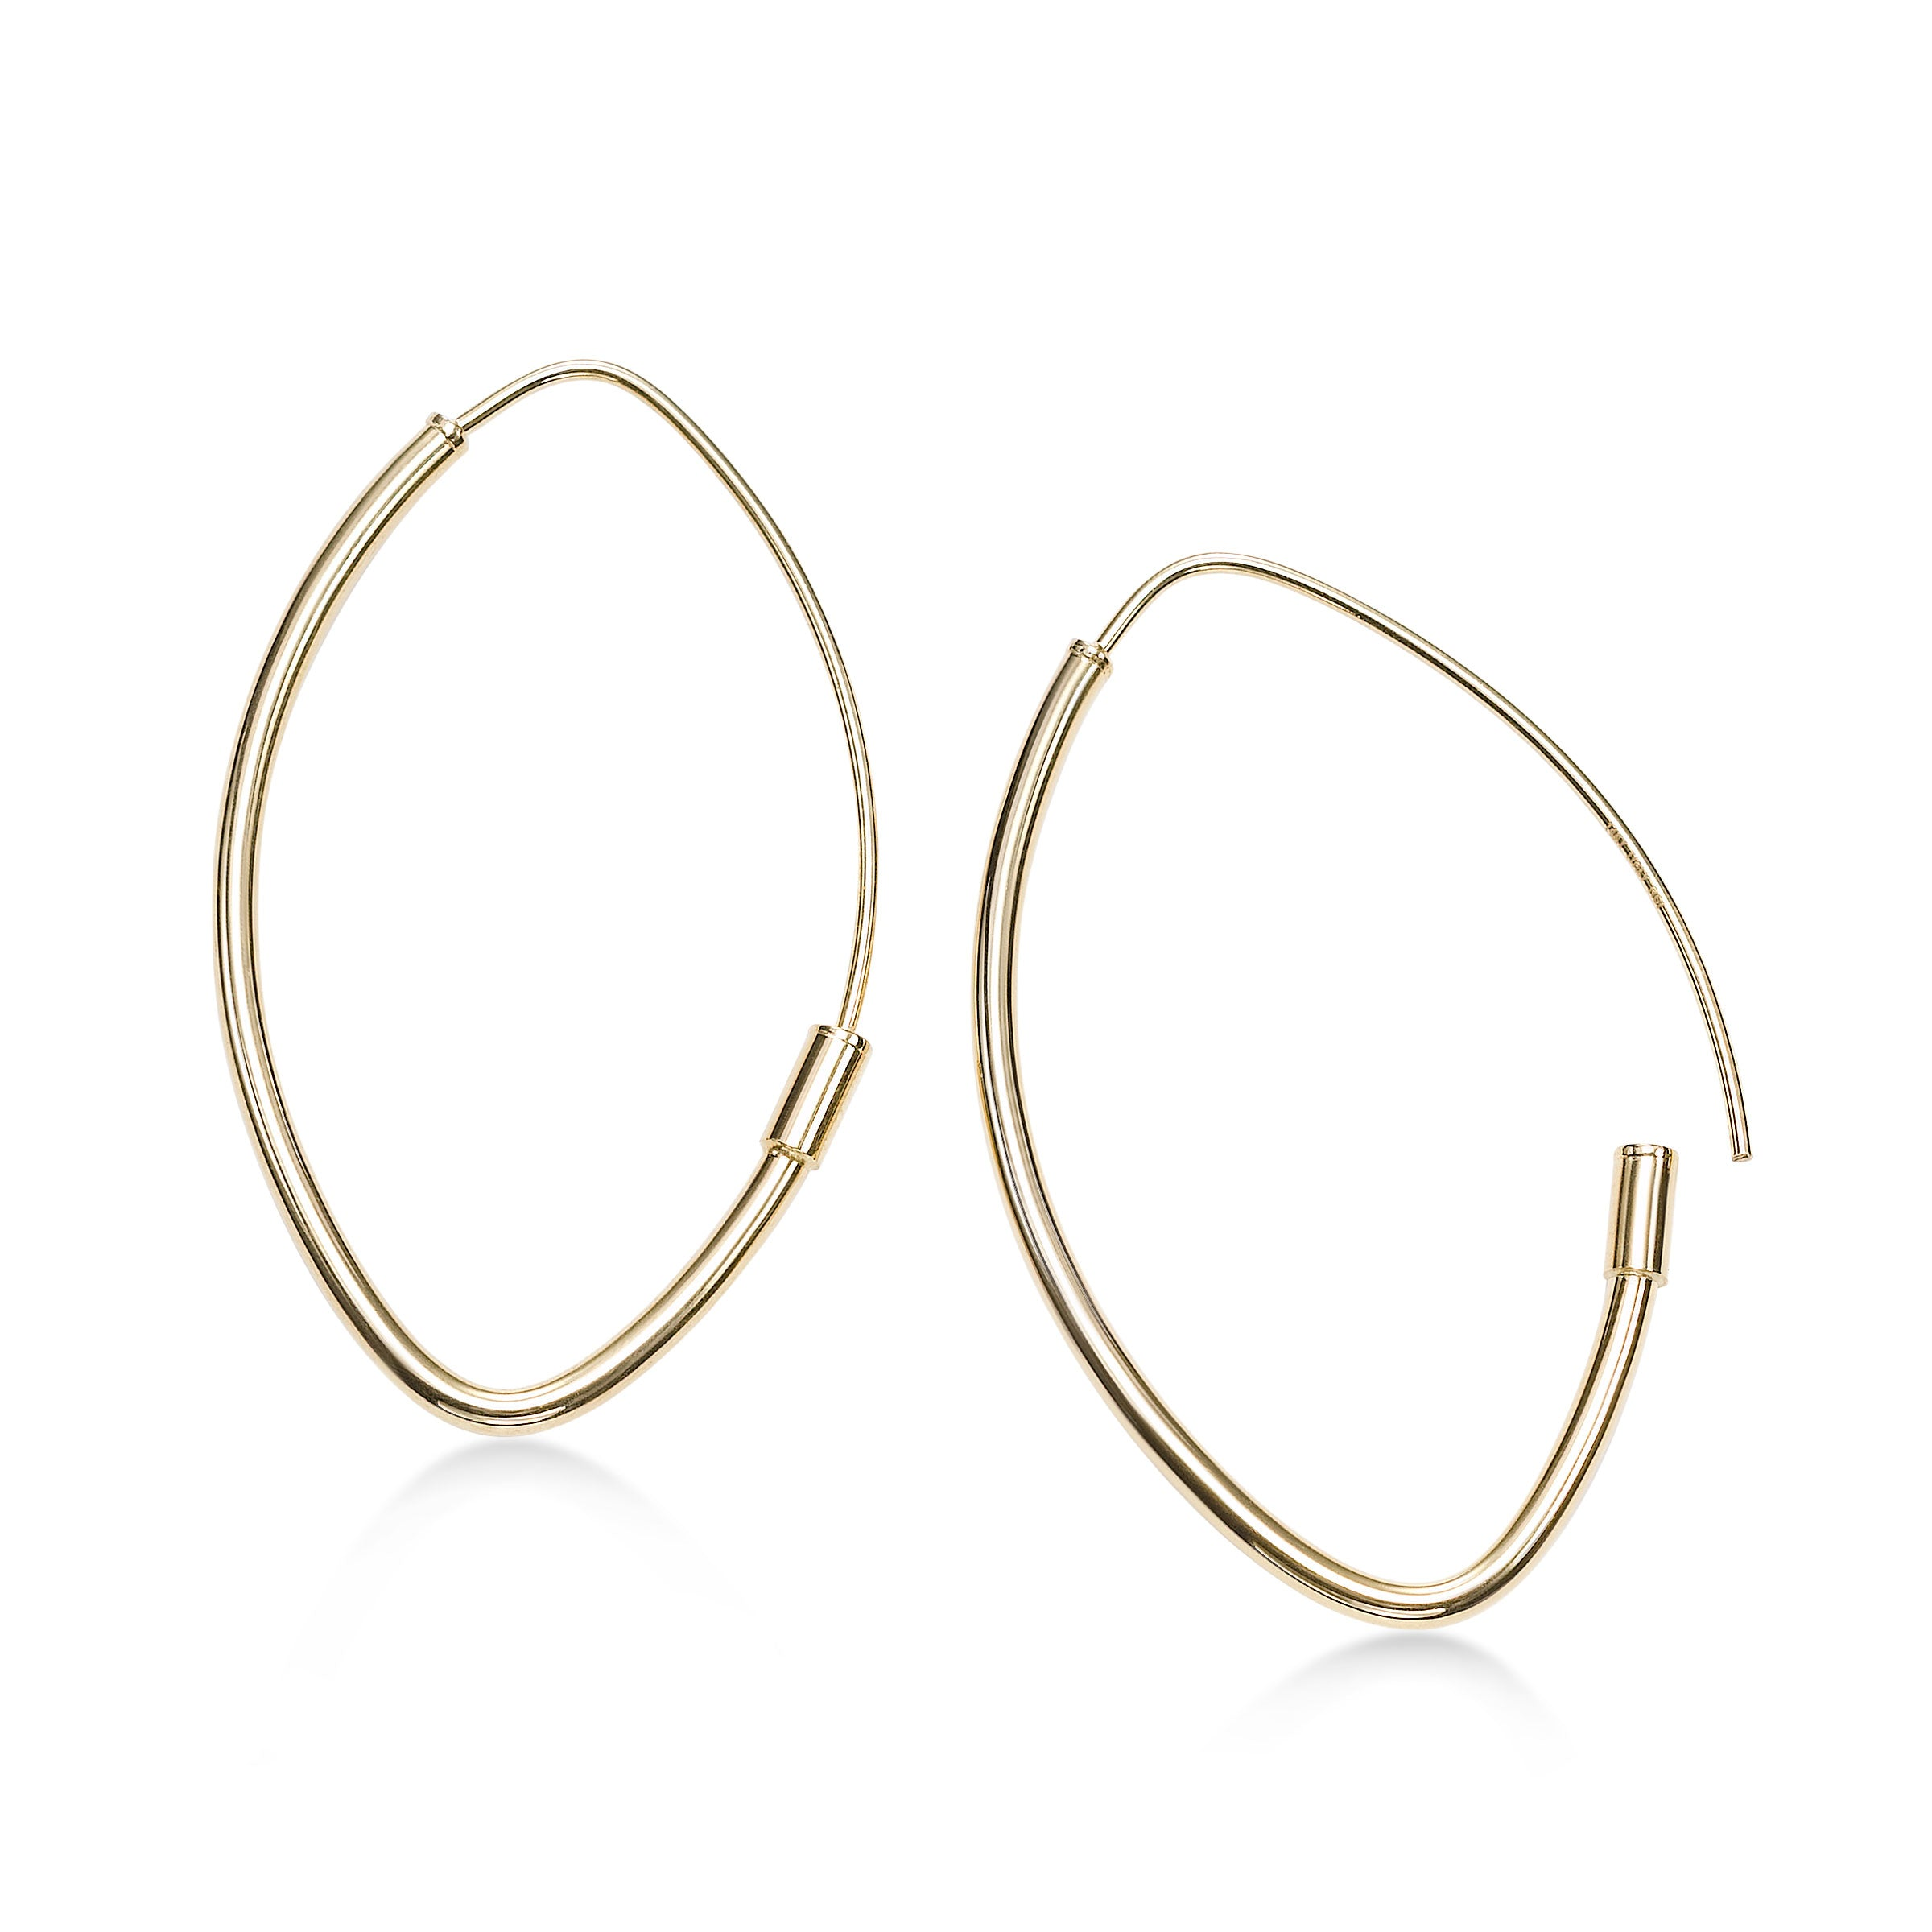 Thin Marquise Shape Hoop Earrings, 14K Yellow Gold